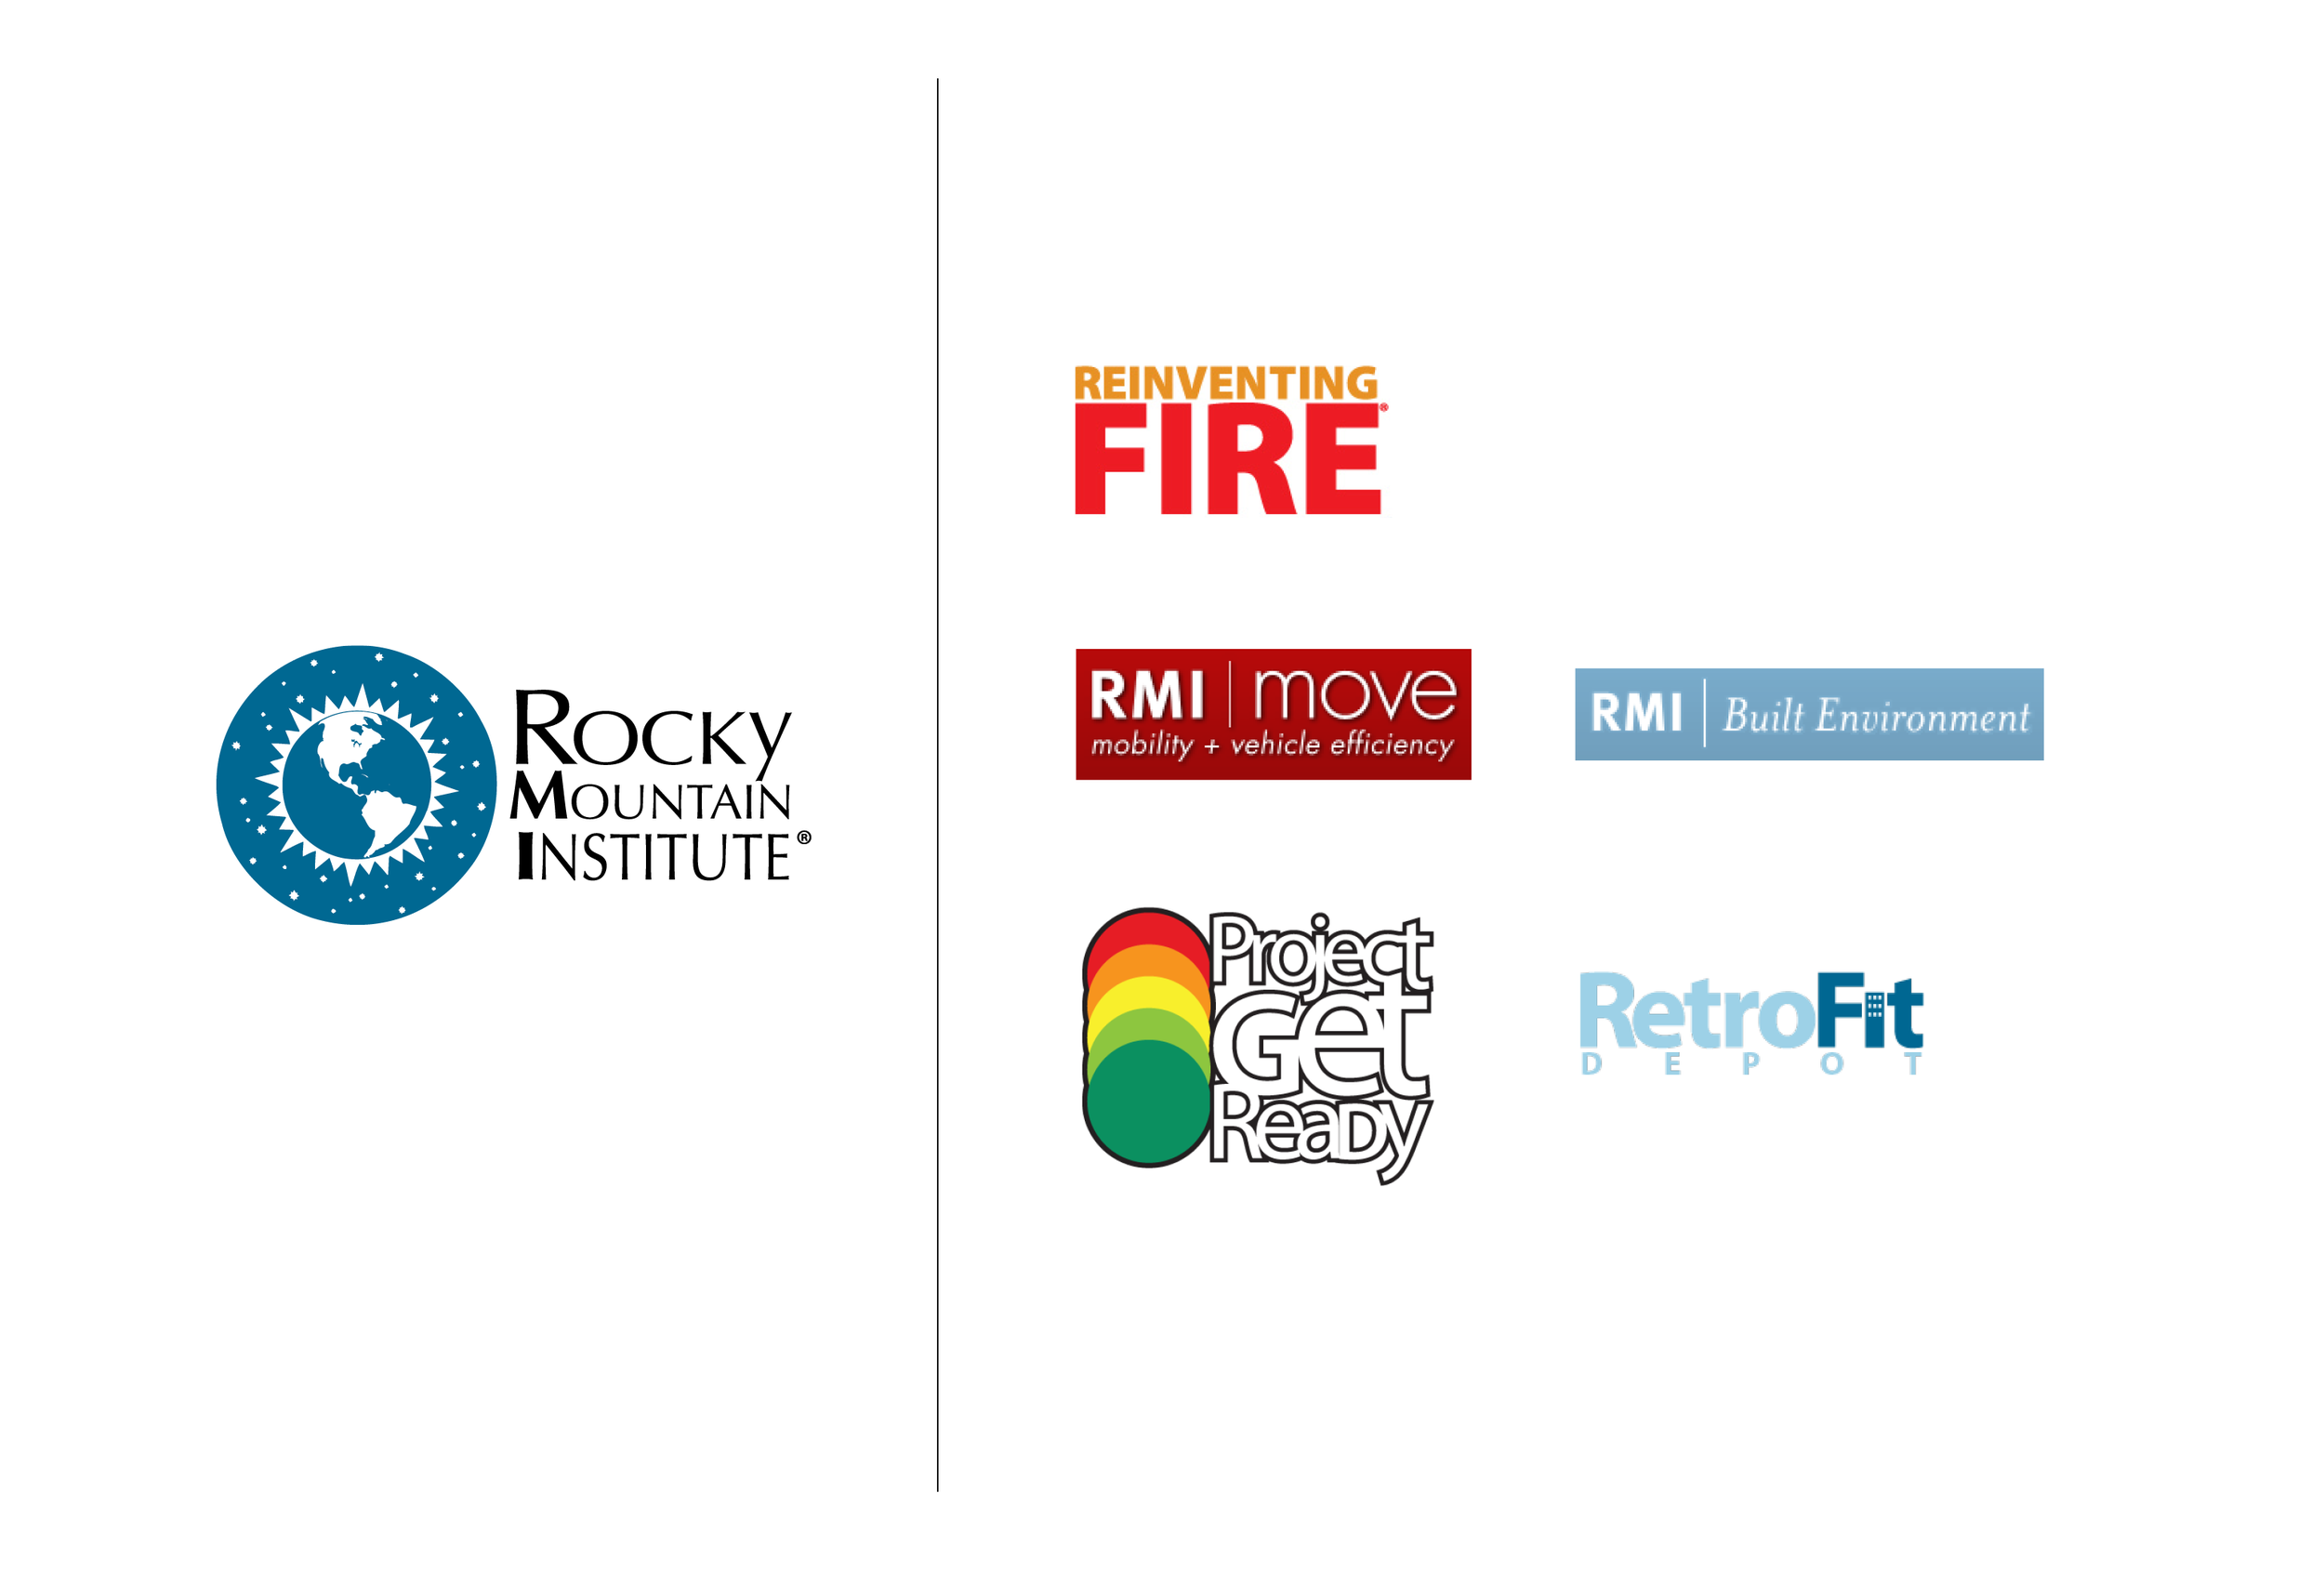 Original RMI and RMI initiative logos.